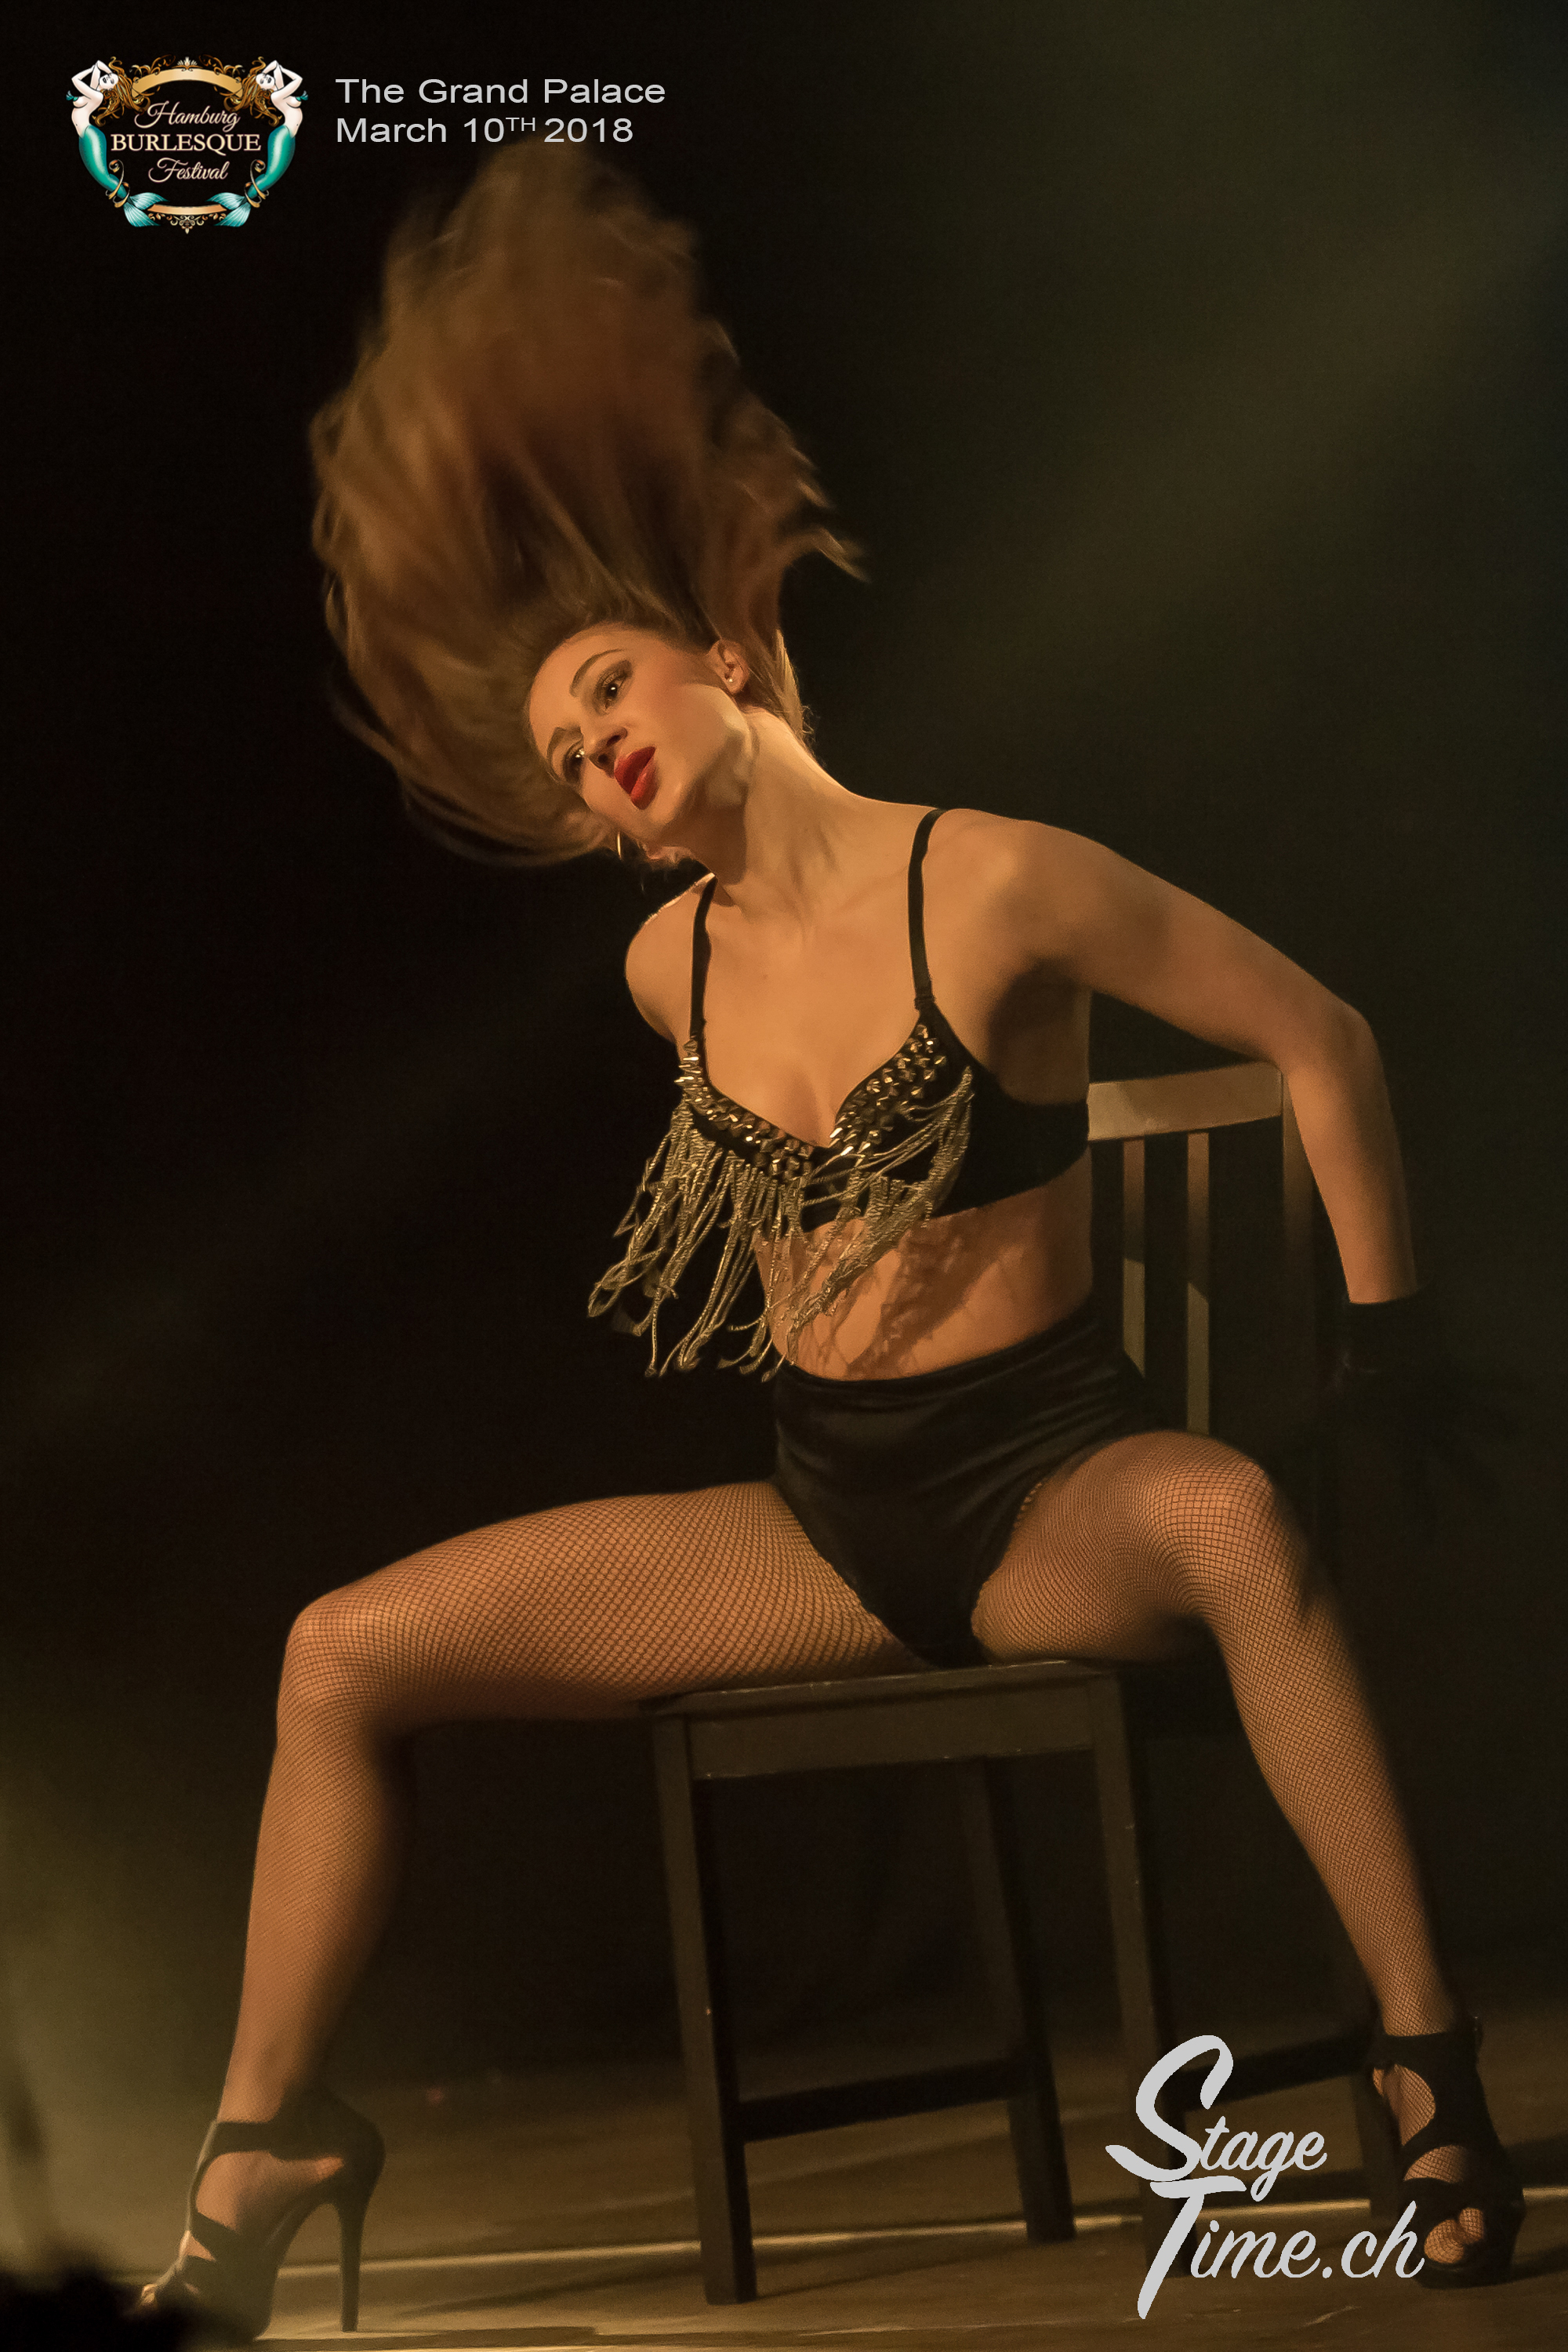 Hamburg_Burlesque_Festival_The_Grand_Palace__📷_Christoph_Gurtner_I_stagetime.ch-141